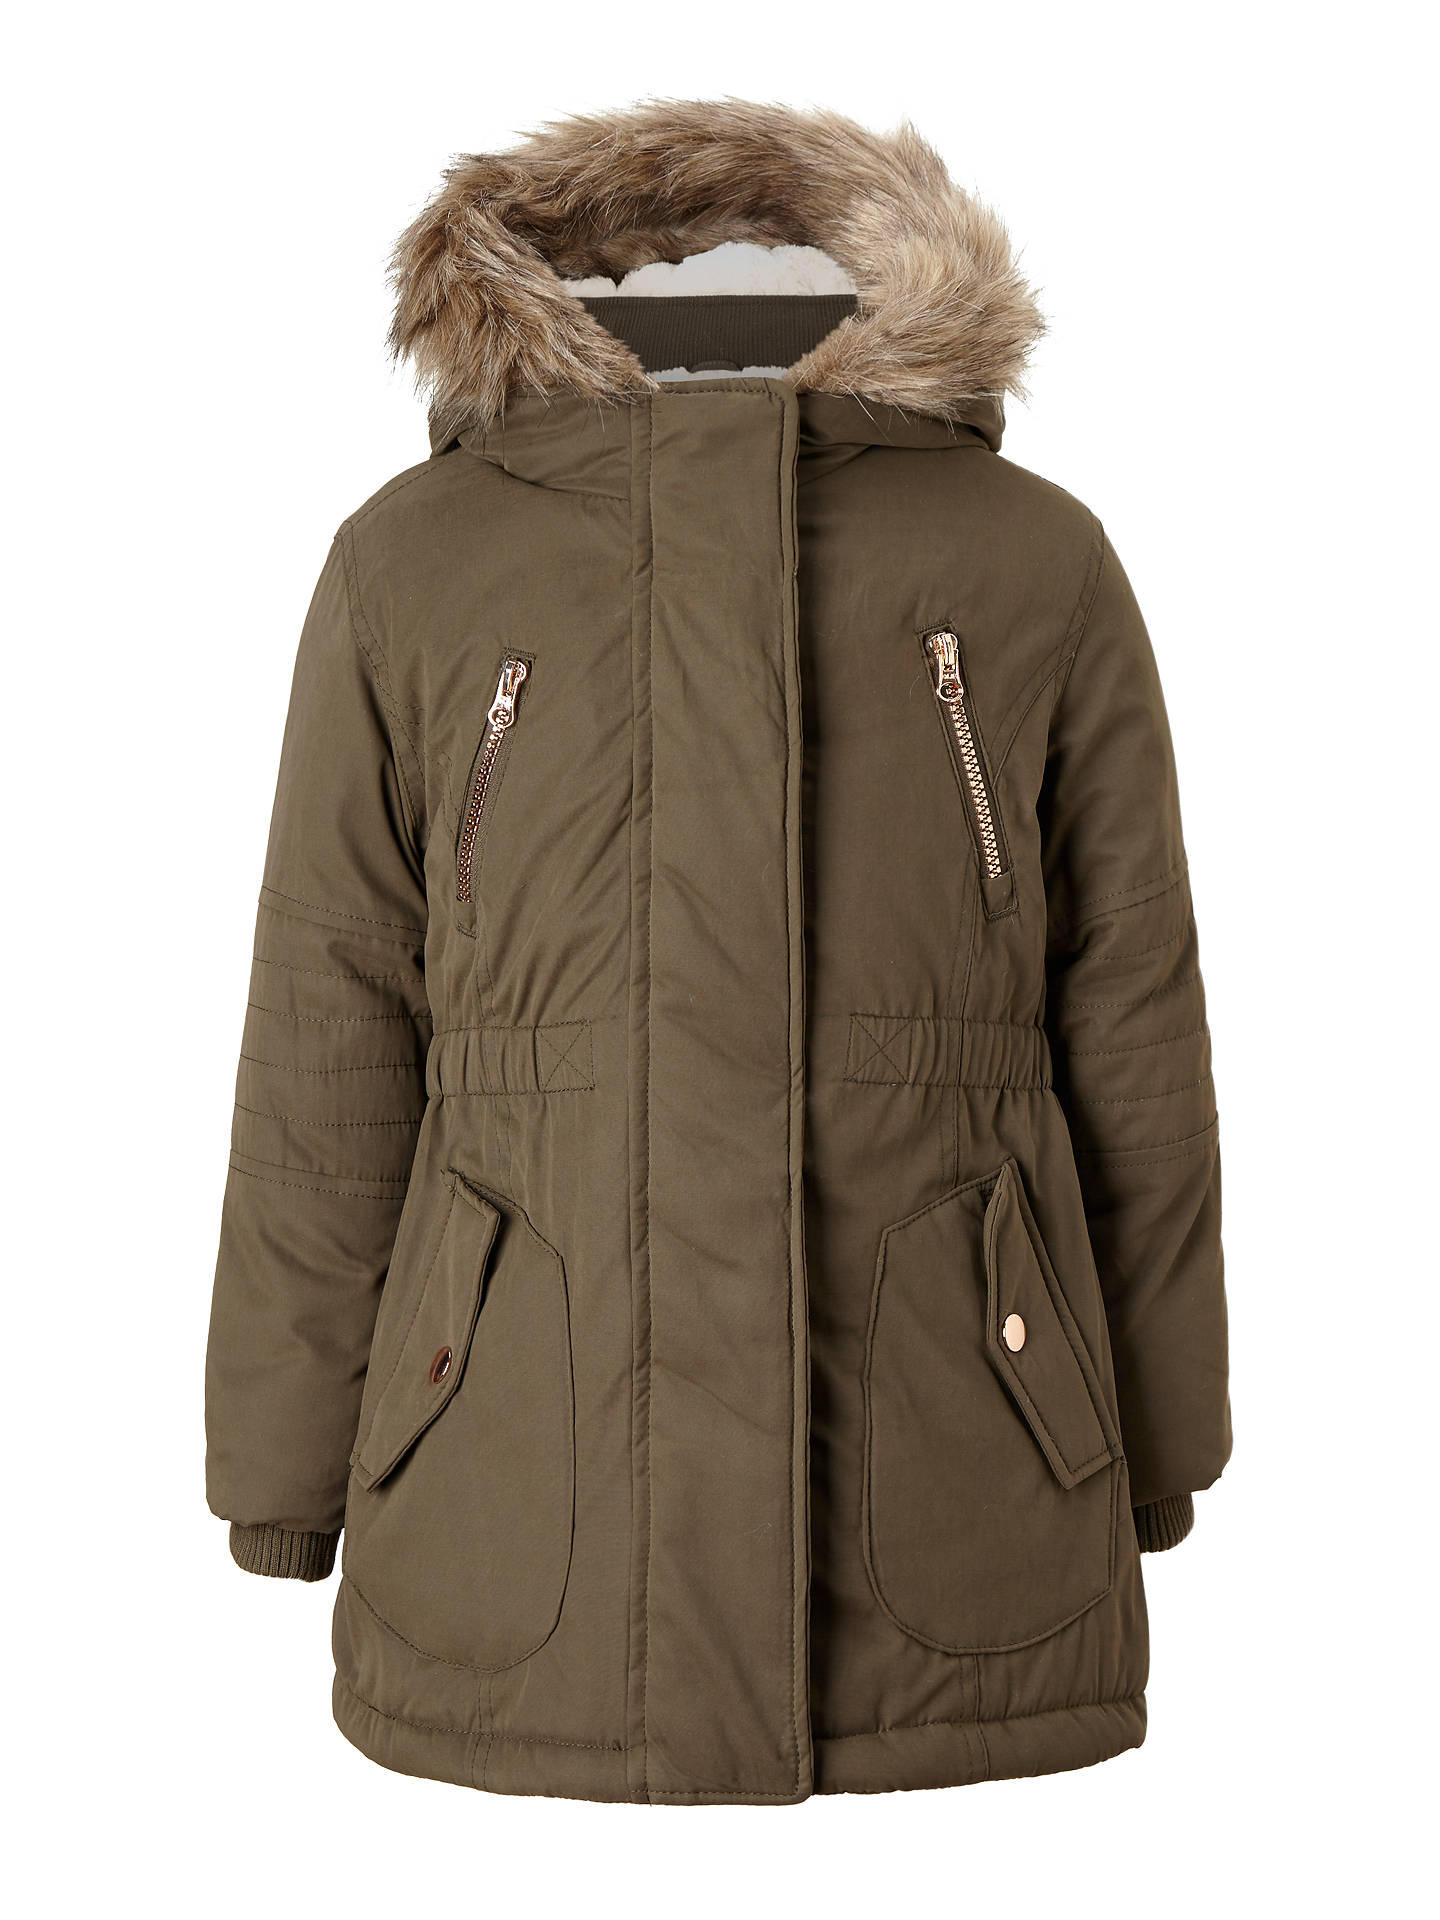 skilful manufacture excellent quality enjoy complimentary shipping John Lewis Girls' Parka Coat at John Lewis & Partners